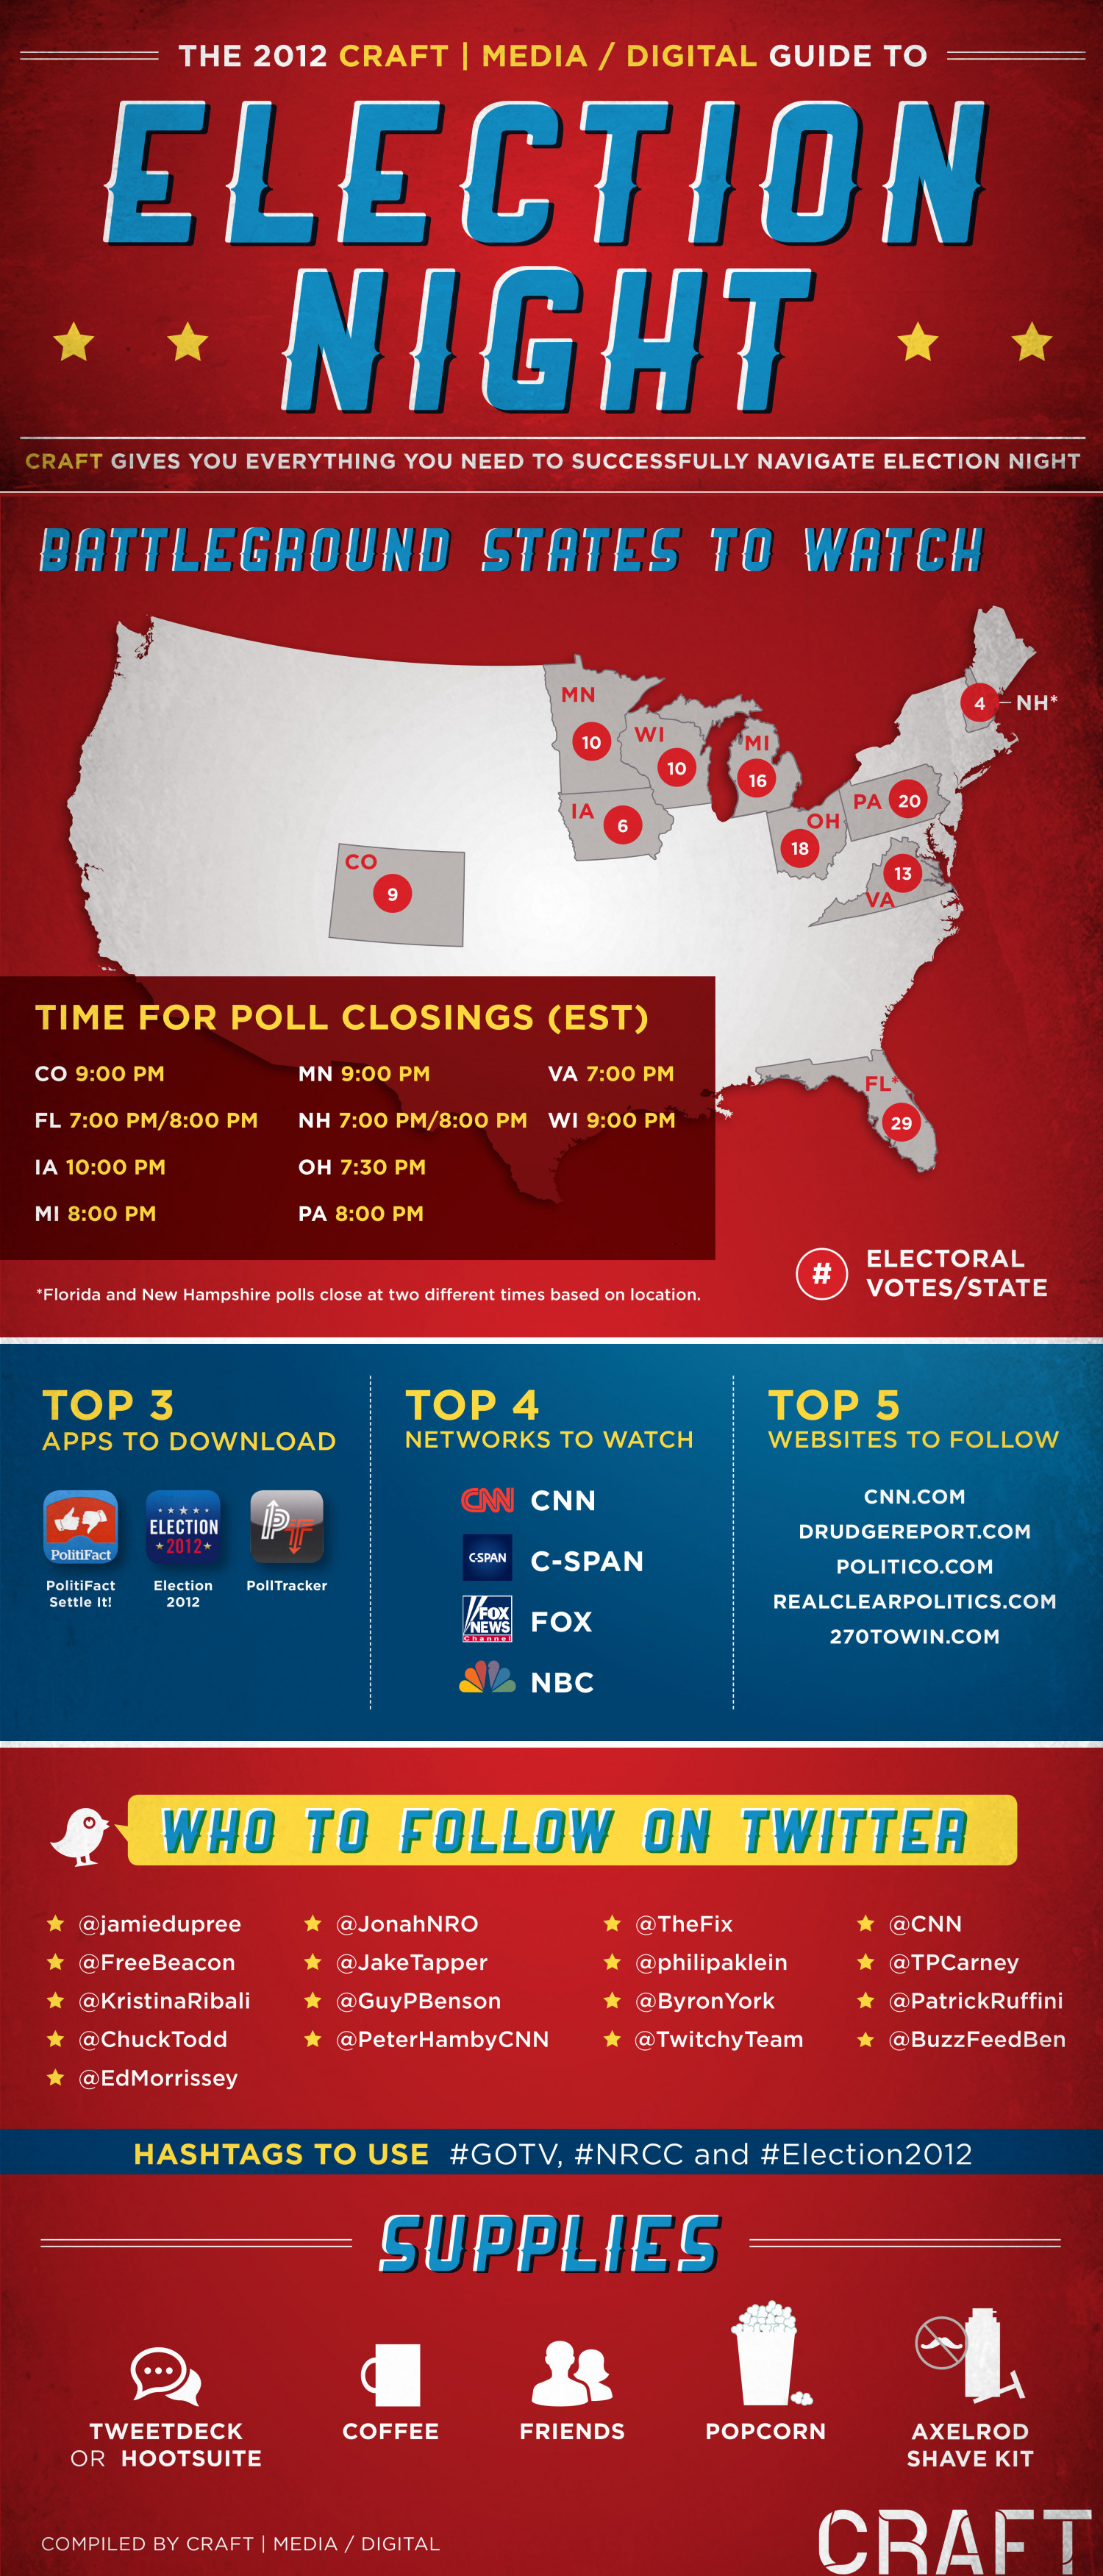 Election Night Guide Infographic